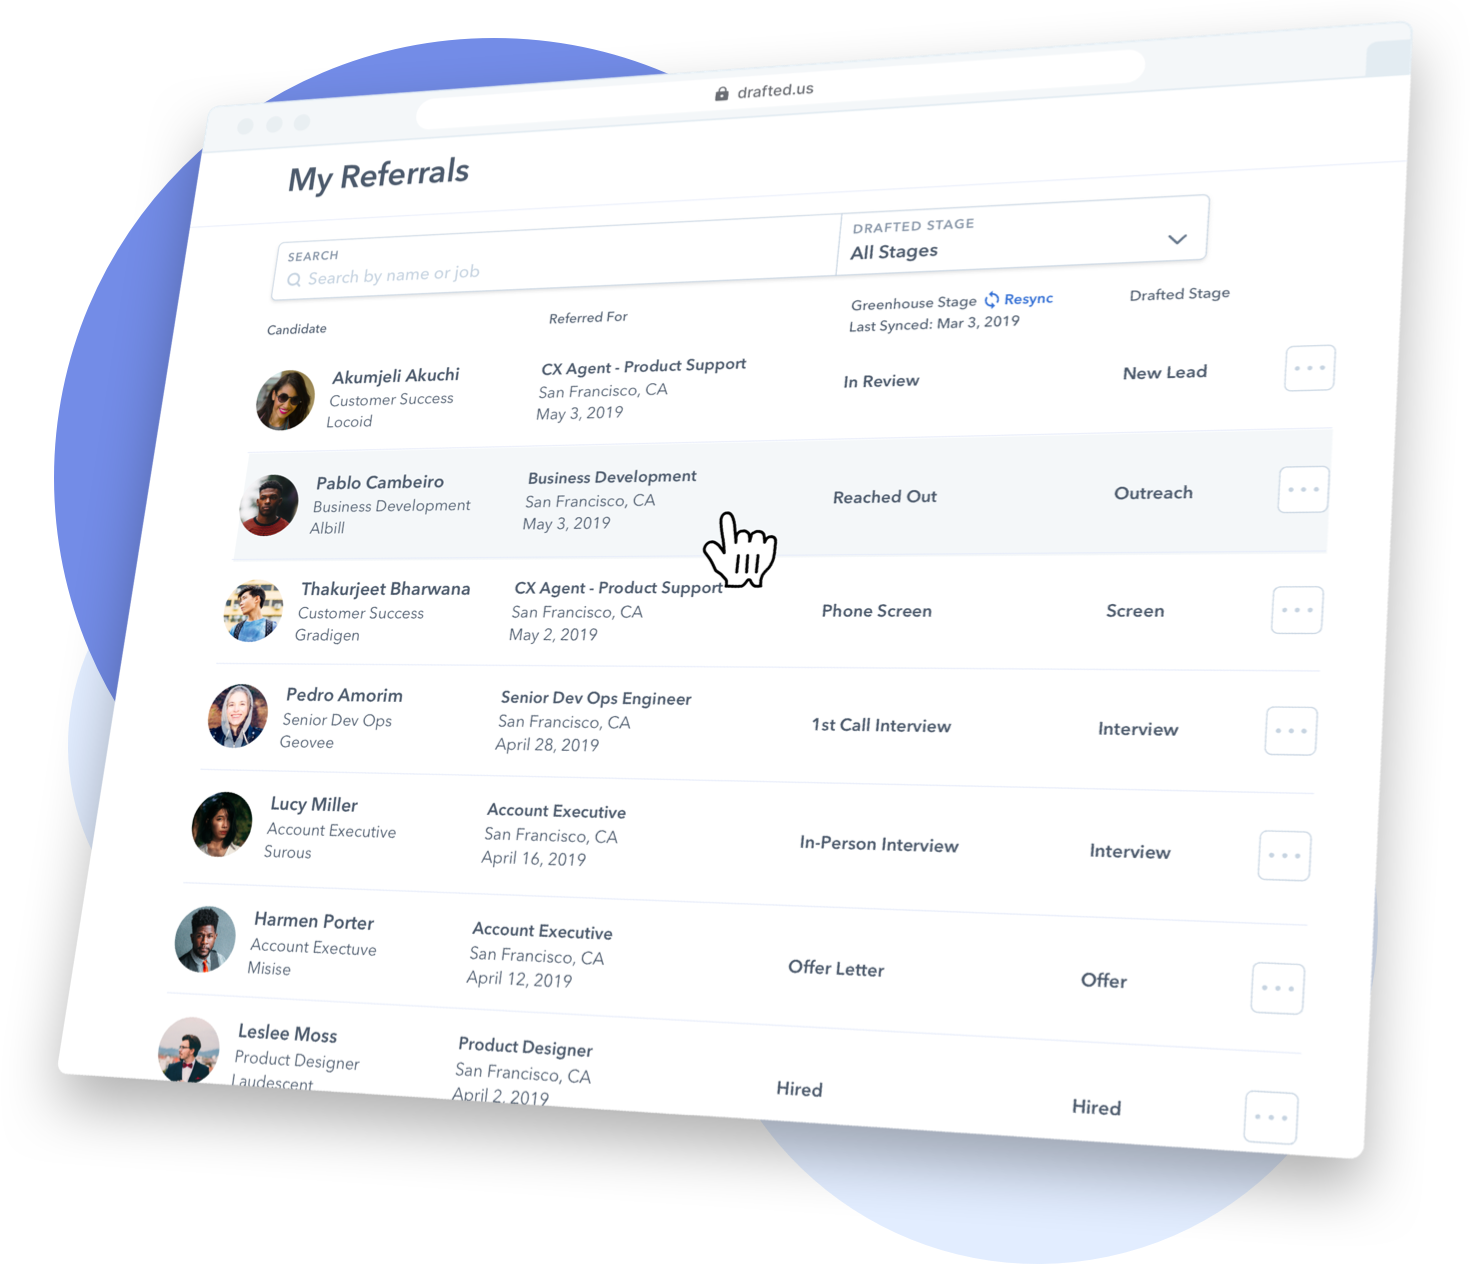 Image of how employees can track their referrals in Drafted